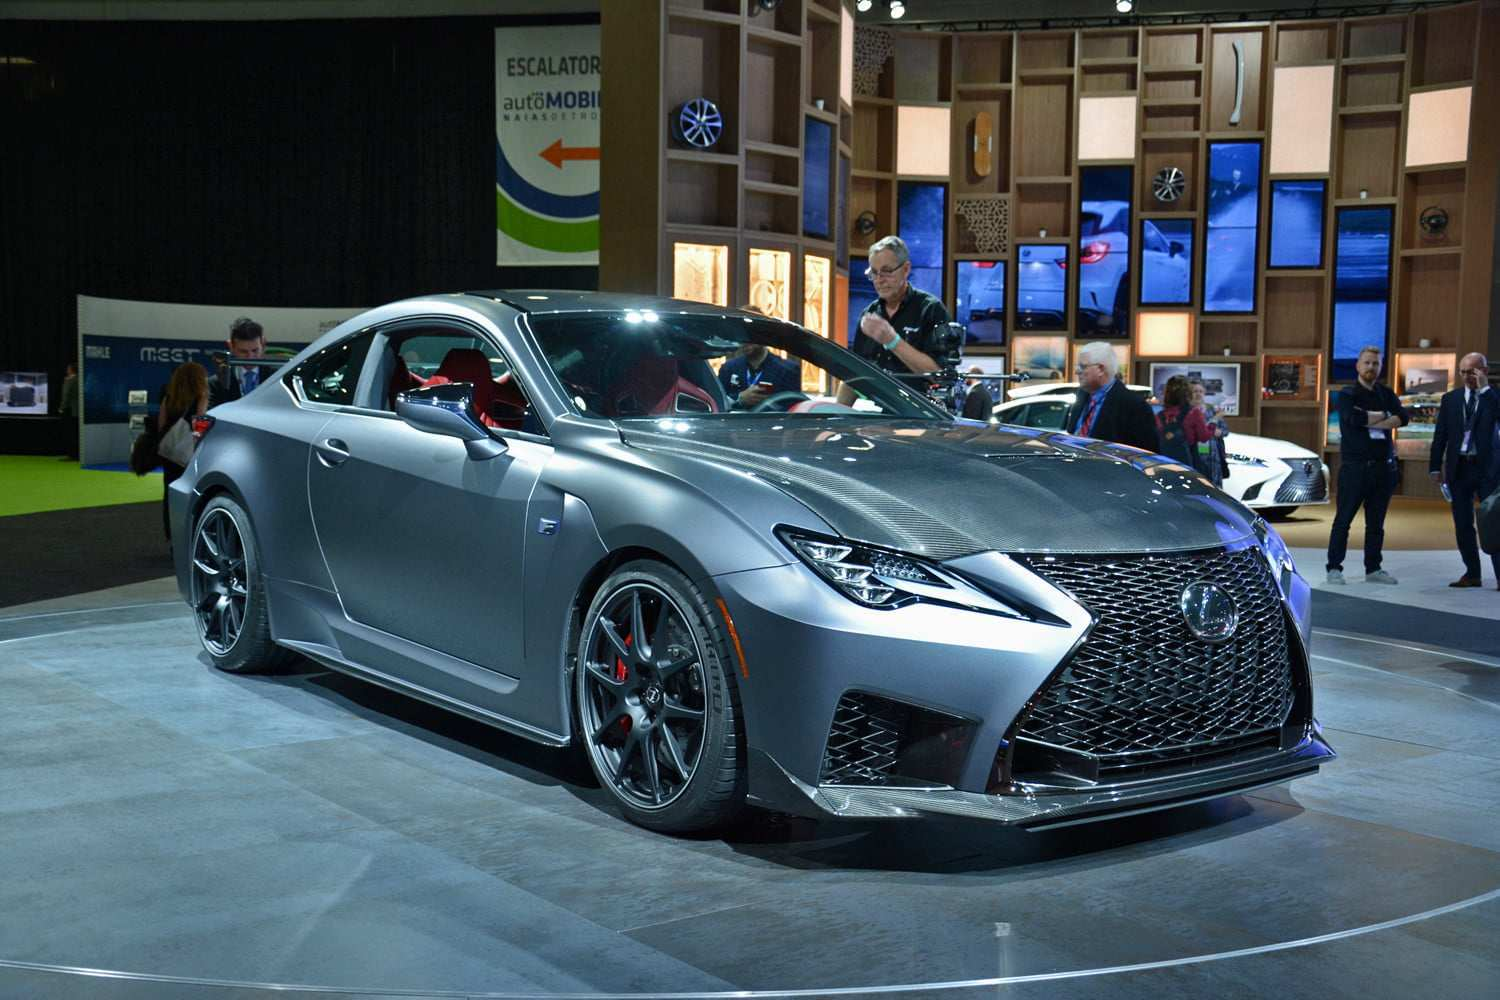 19 Concept of Rcf Lexus 2020 Engine with Rcf Lexus 2020